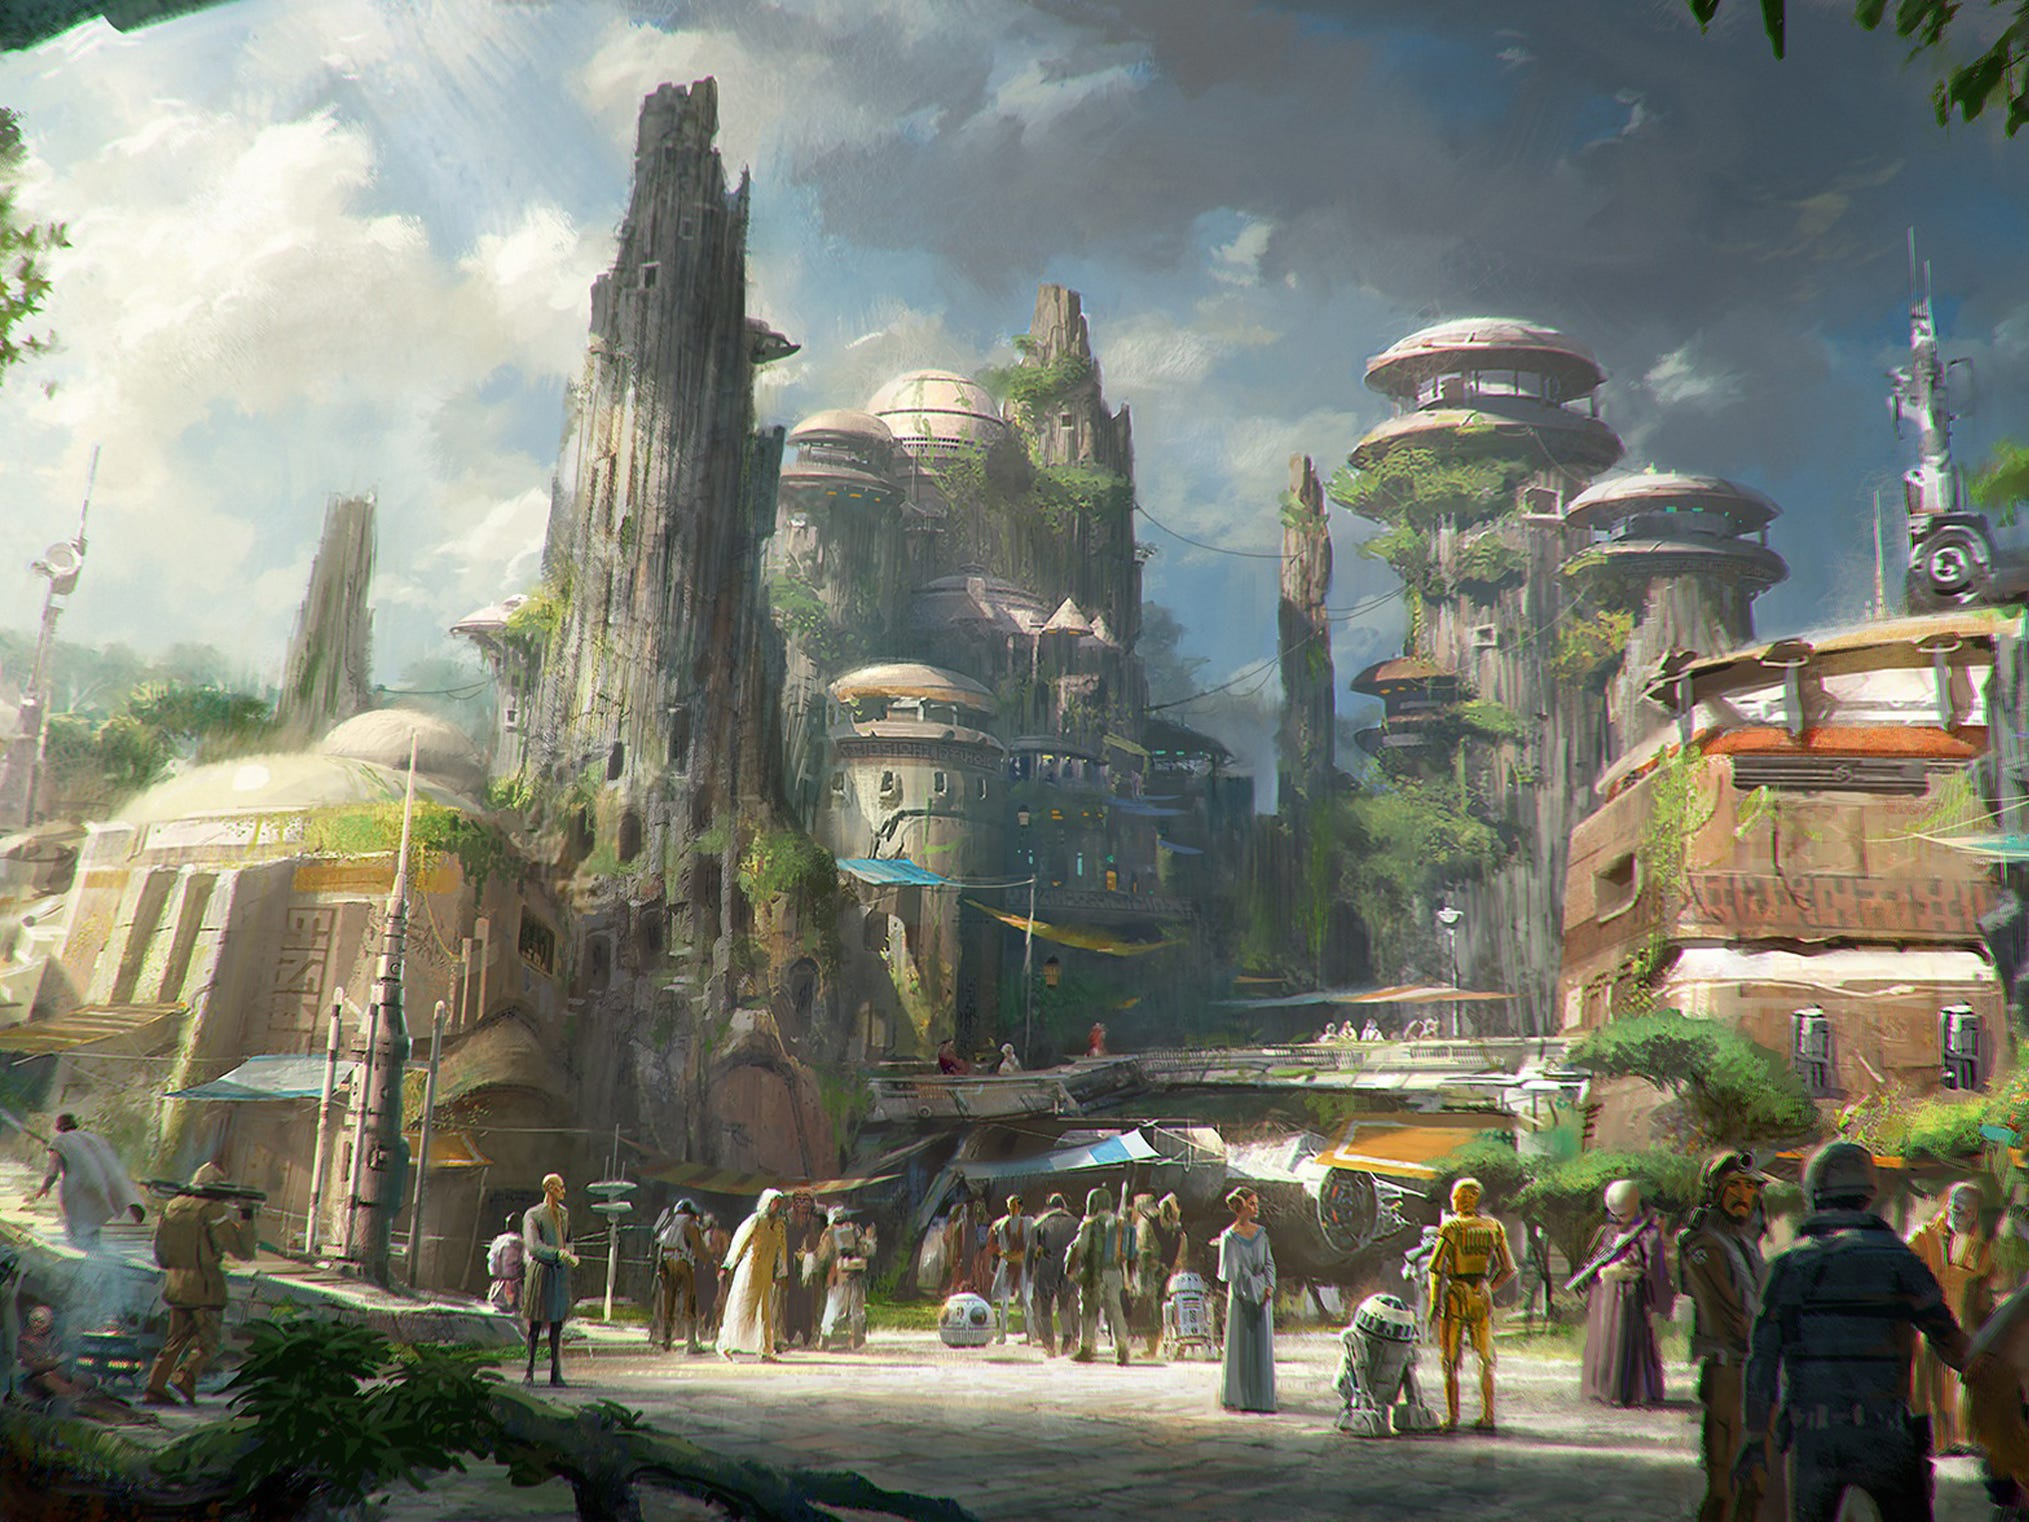 Star Wars: Galaxy's Edge opens May 31, 2019 at Disneyland. Reservations will be needed at least through June 23.